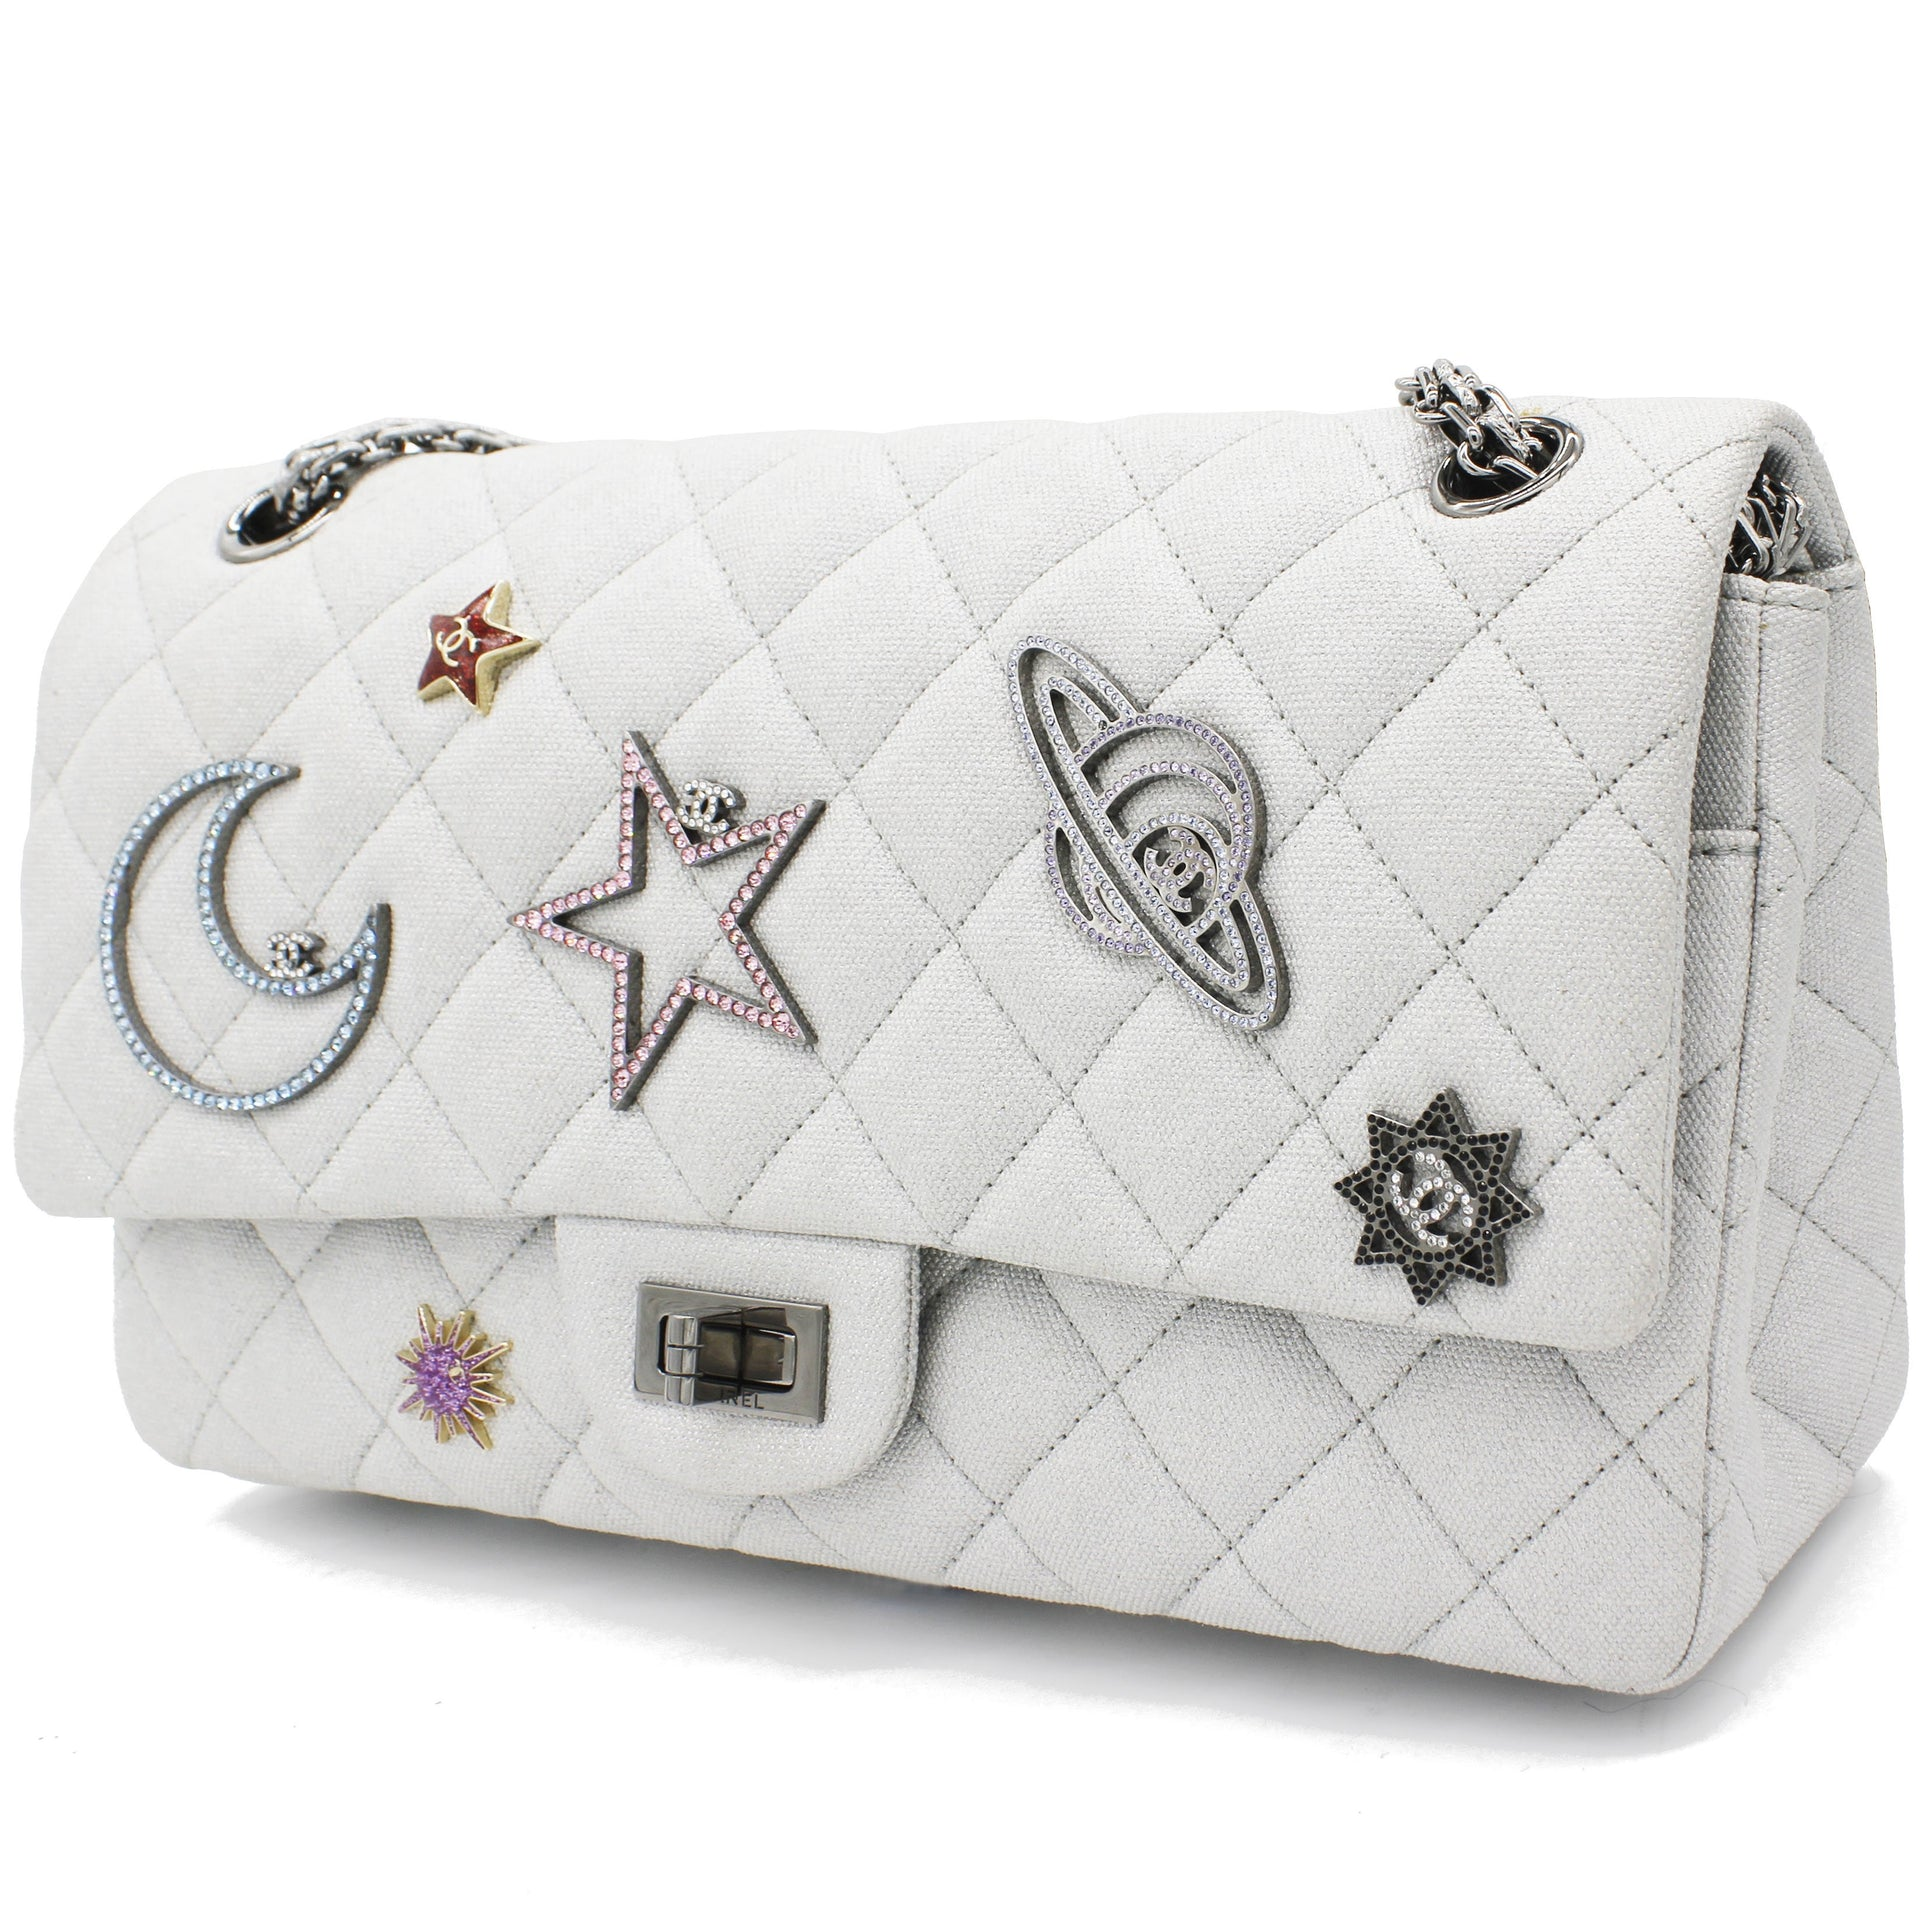 Silver 2.55 Canvas Reissue Space Charms 227 Flap Bag